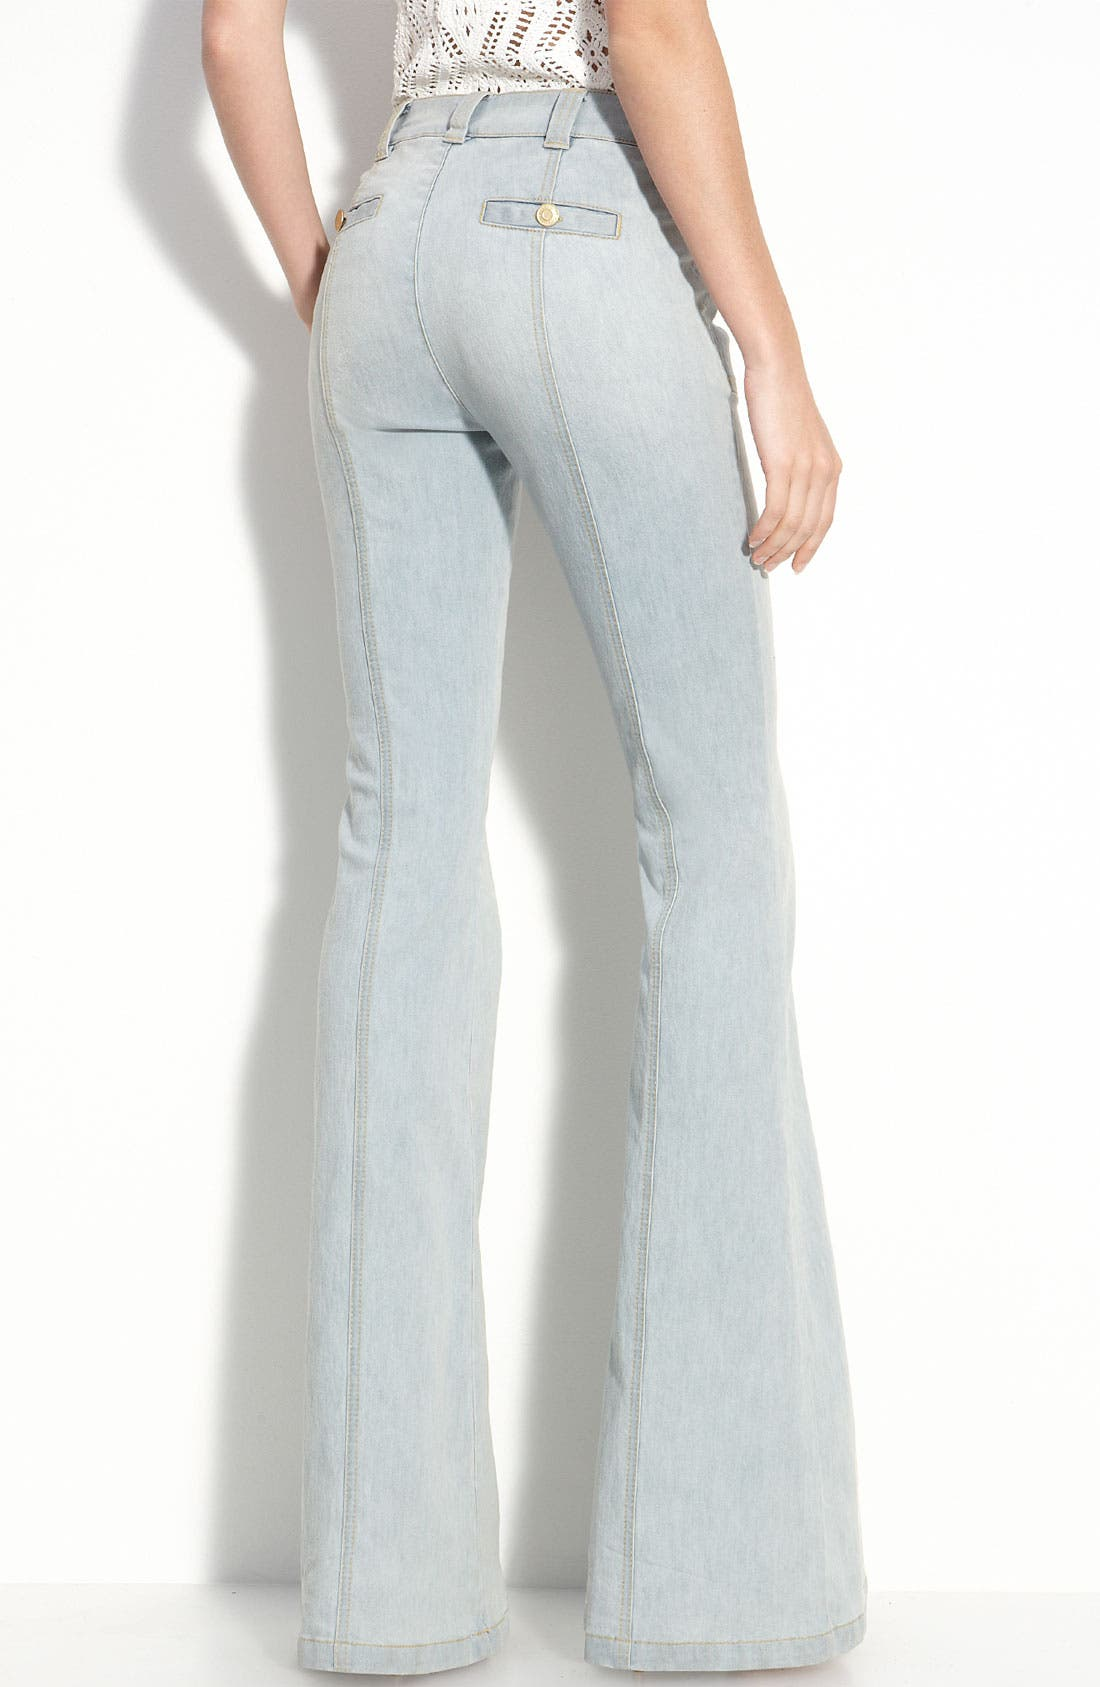 Alternate Image 1 Selected - Rachel Zoe 'Campbell' Flare Leg Stretch Jeans (Long)